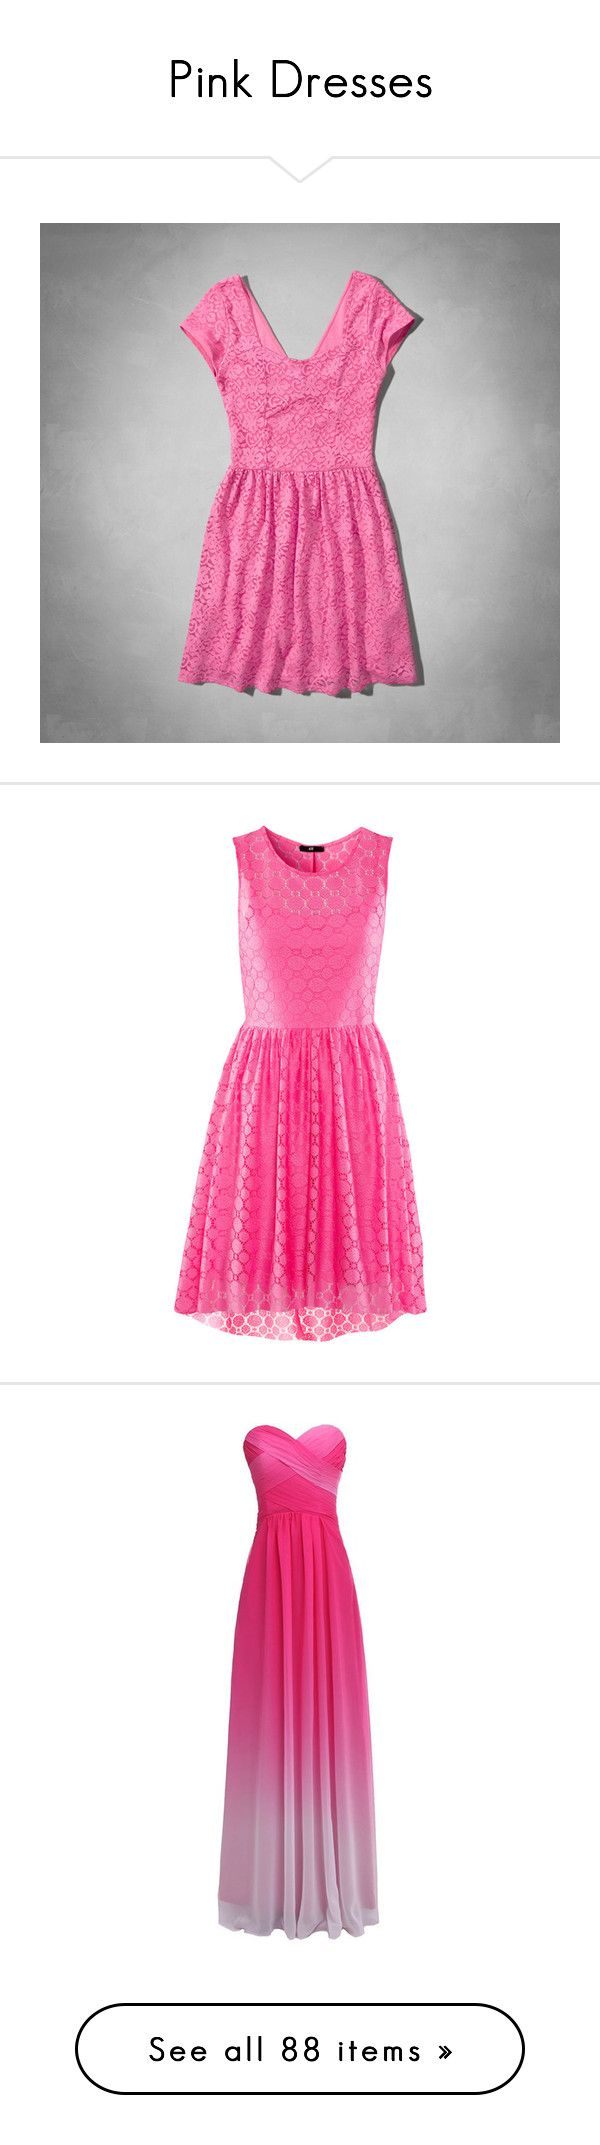 """Pink Dresses"" by jadeadaline ❤ liked on Polyvore featuring dresses, pink dresses, short dresses, vestidos, neon pink, sparkly dresses, prom dresses, sparkly prom dresses, pink sparkly dress and pink striped dress"